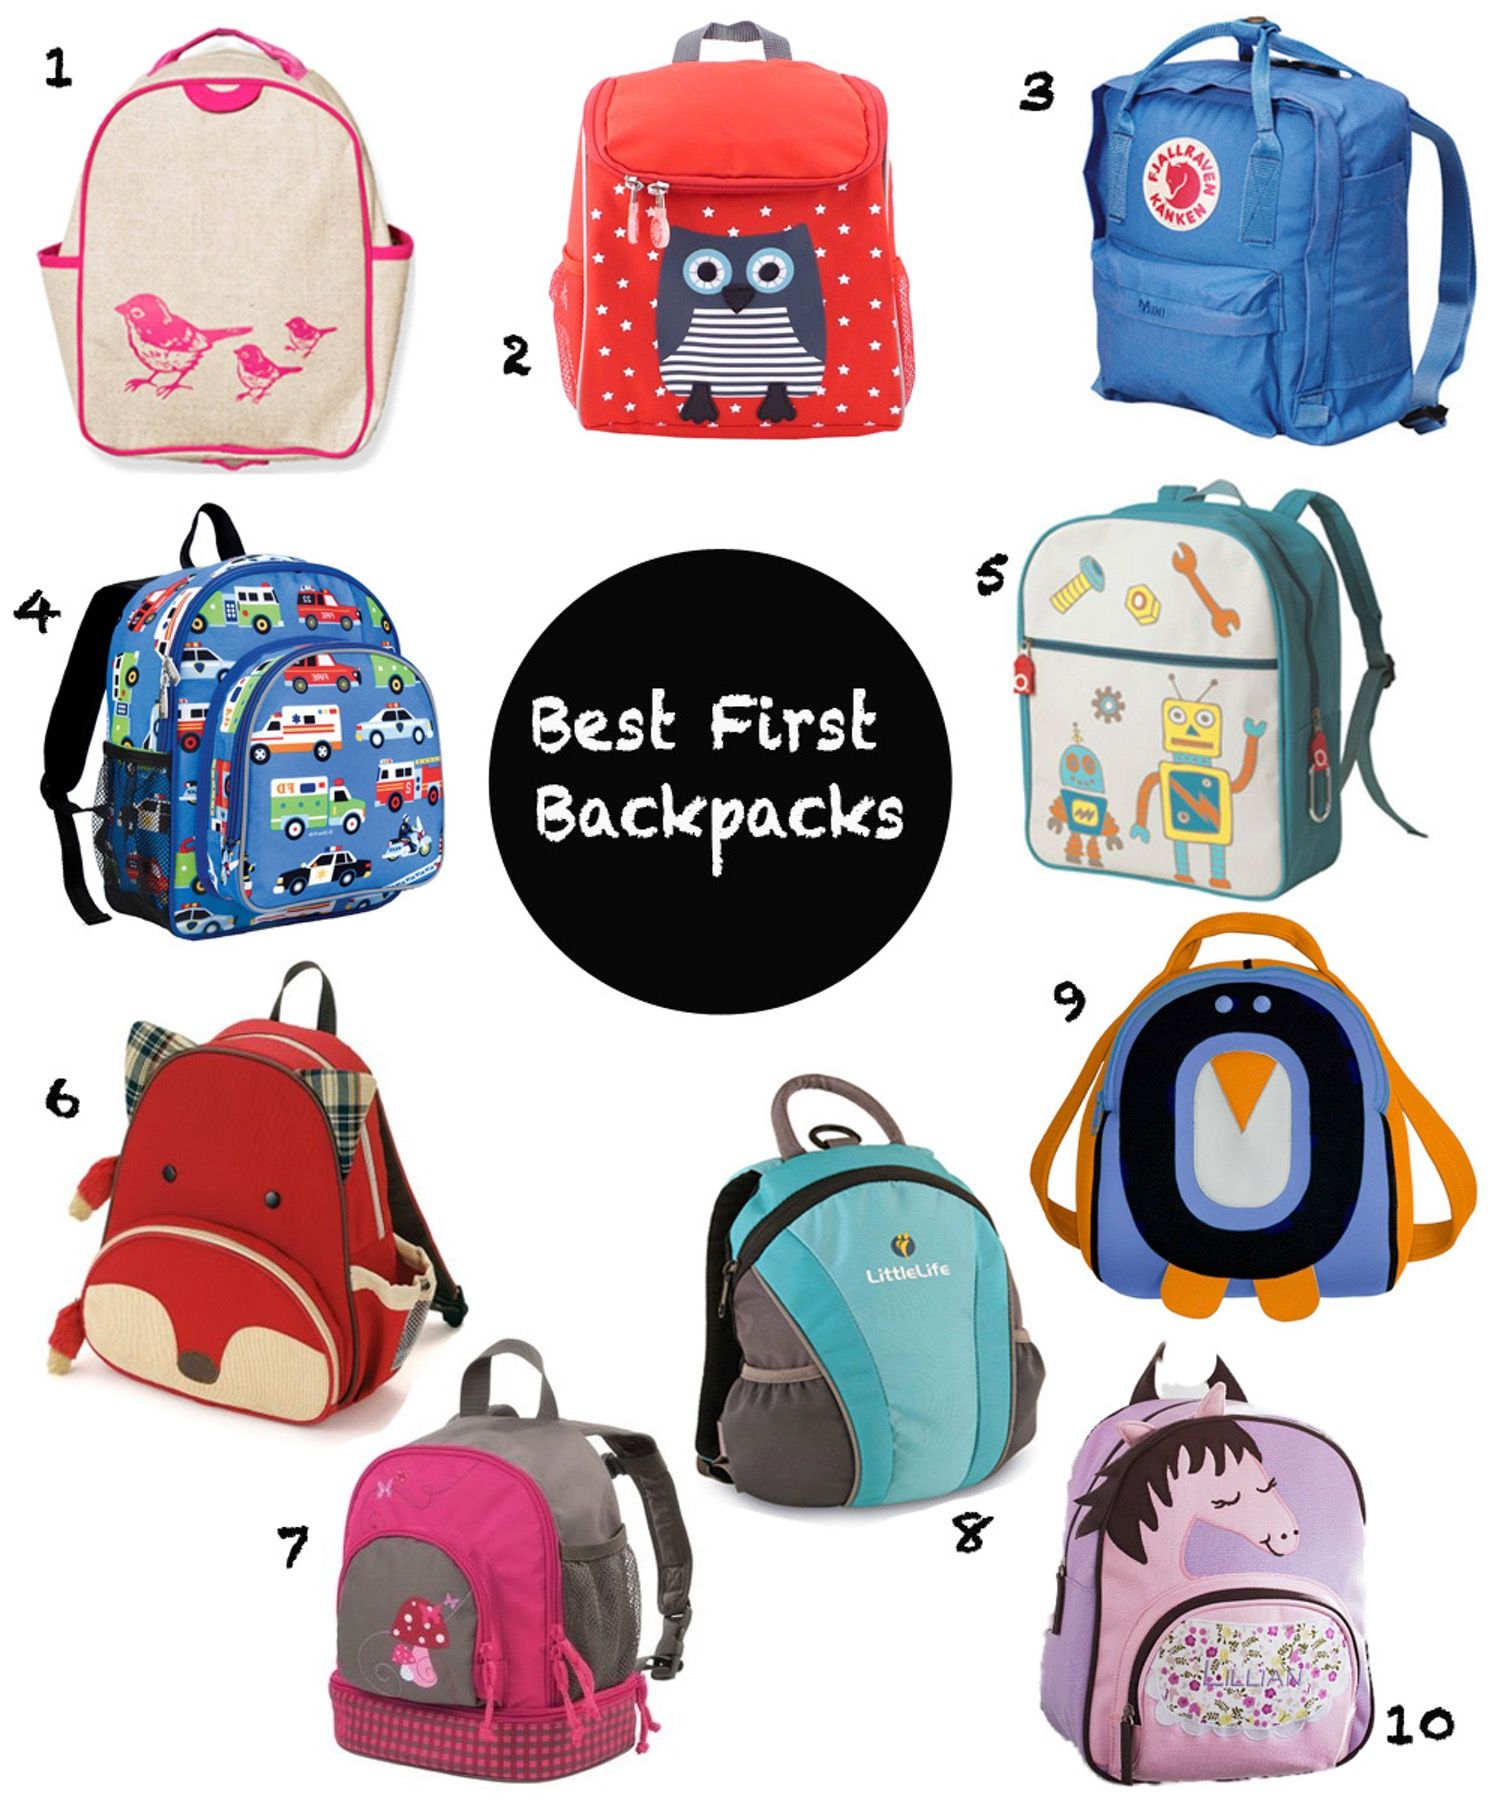 f6bb70d846 Best First Backpacks for Toddlers